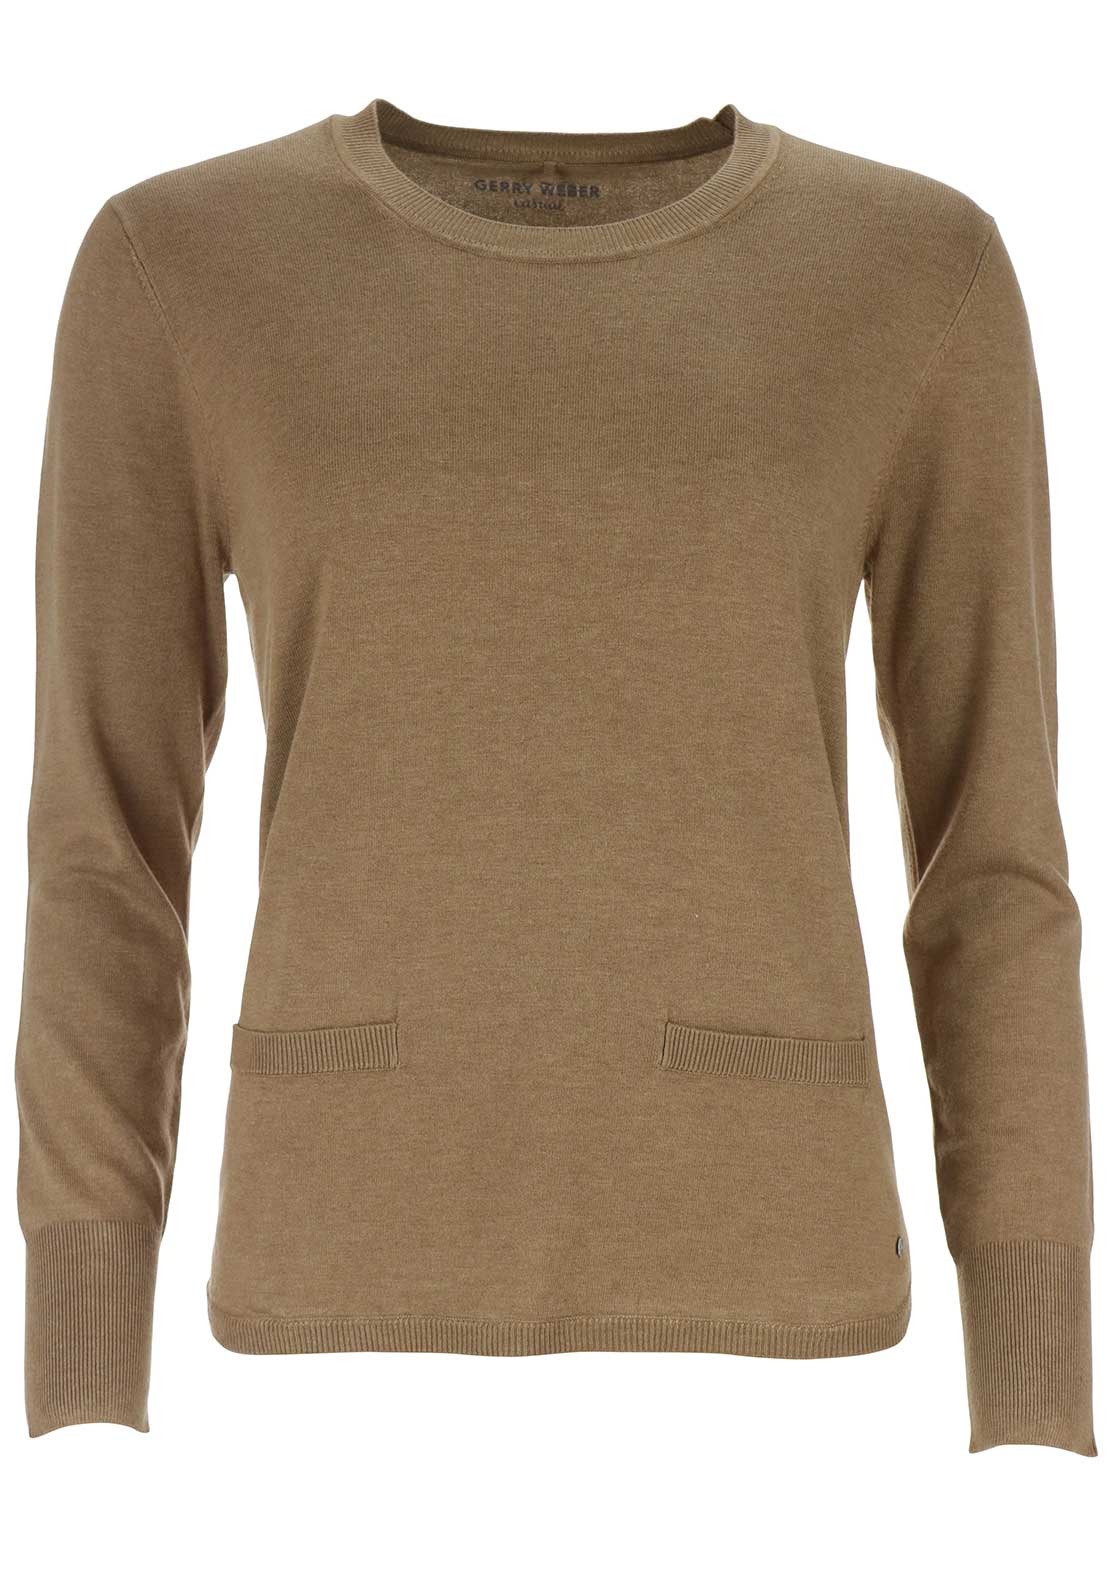 Gerry Weber Fine Knit Jumper, Light Brown